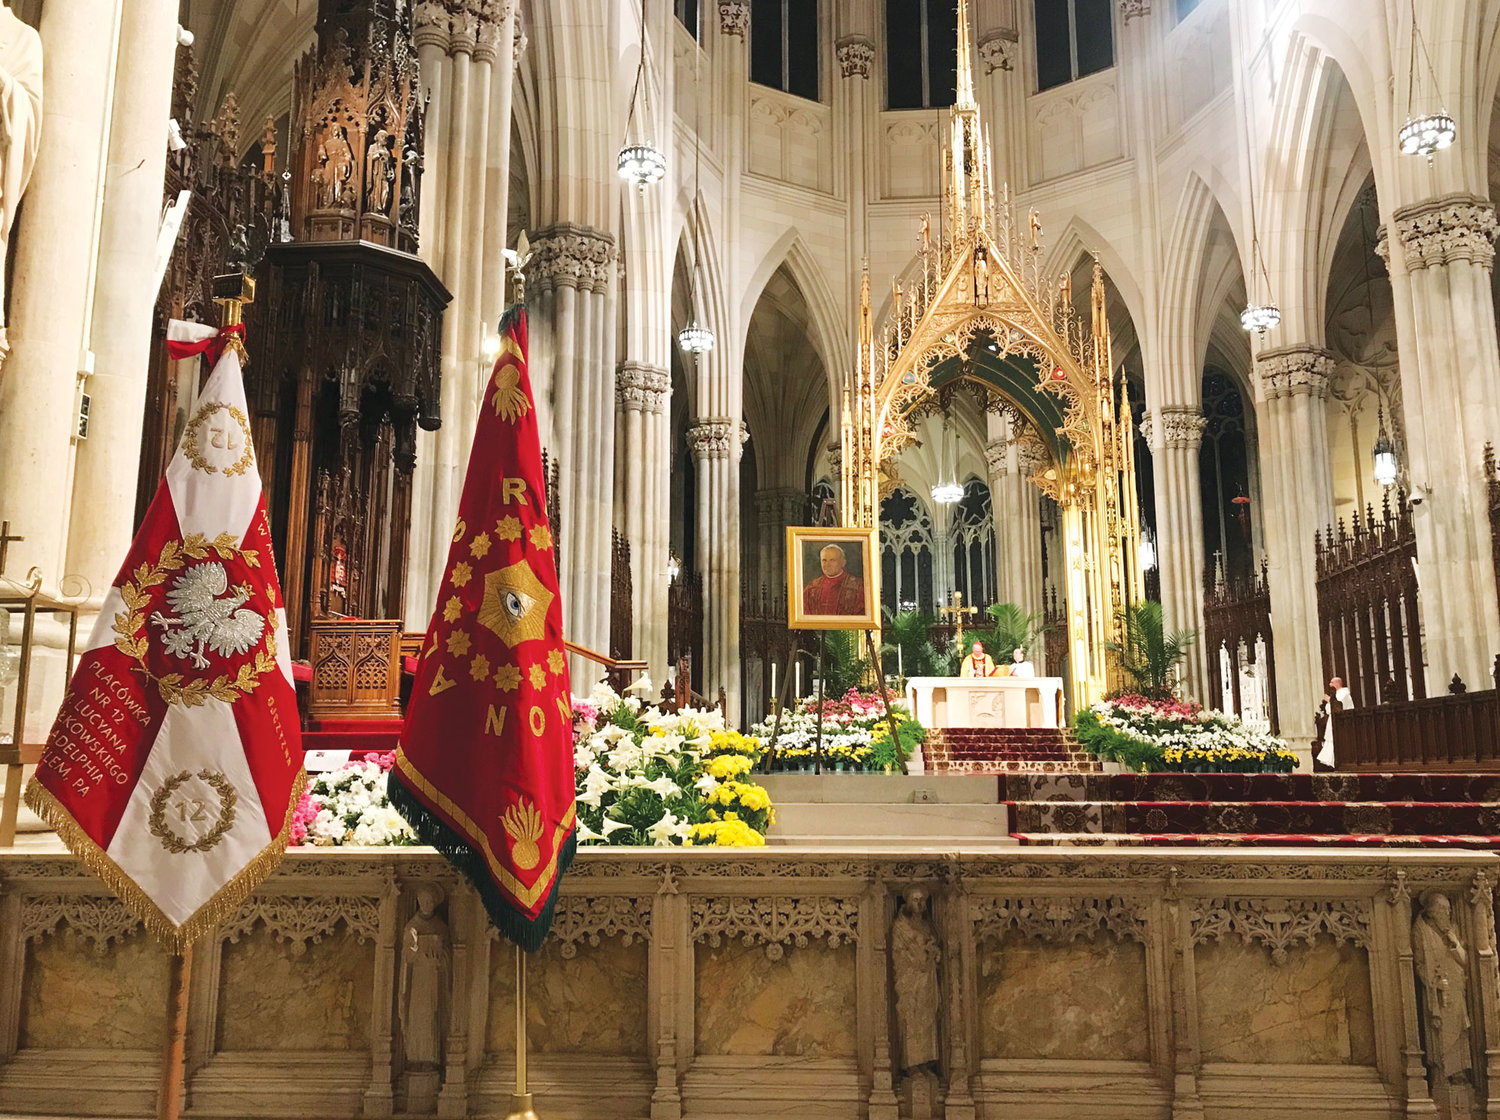 A portrait of St. John Paul II is displayed in the sanctuary of St. Patrick's Cathedral during the annual St. Pope John Paul II Tribute Mass Cardinal Dolan celebrated on Divine Mercy Sunday, April 28.